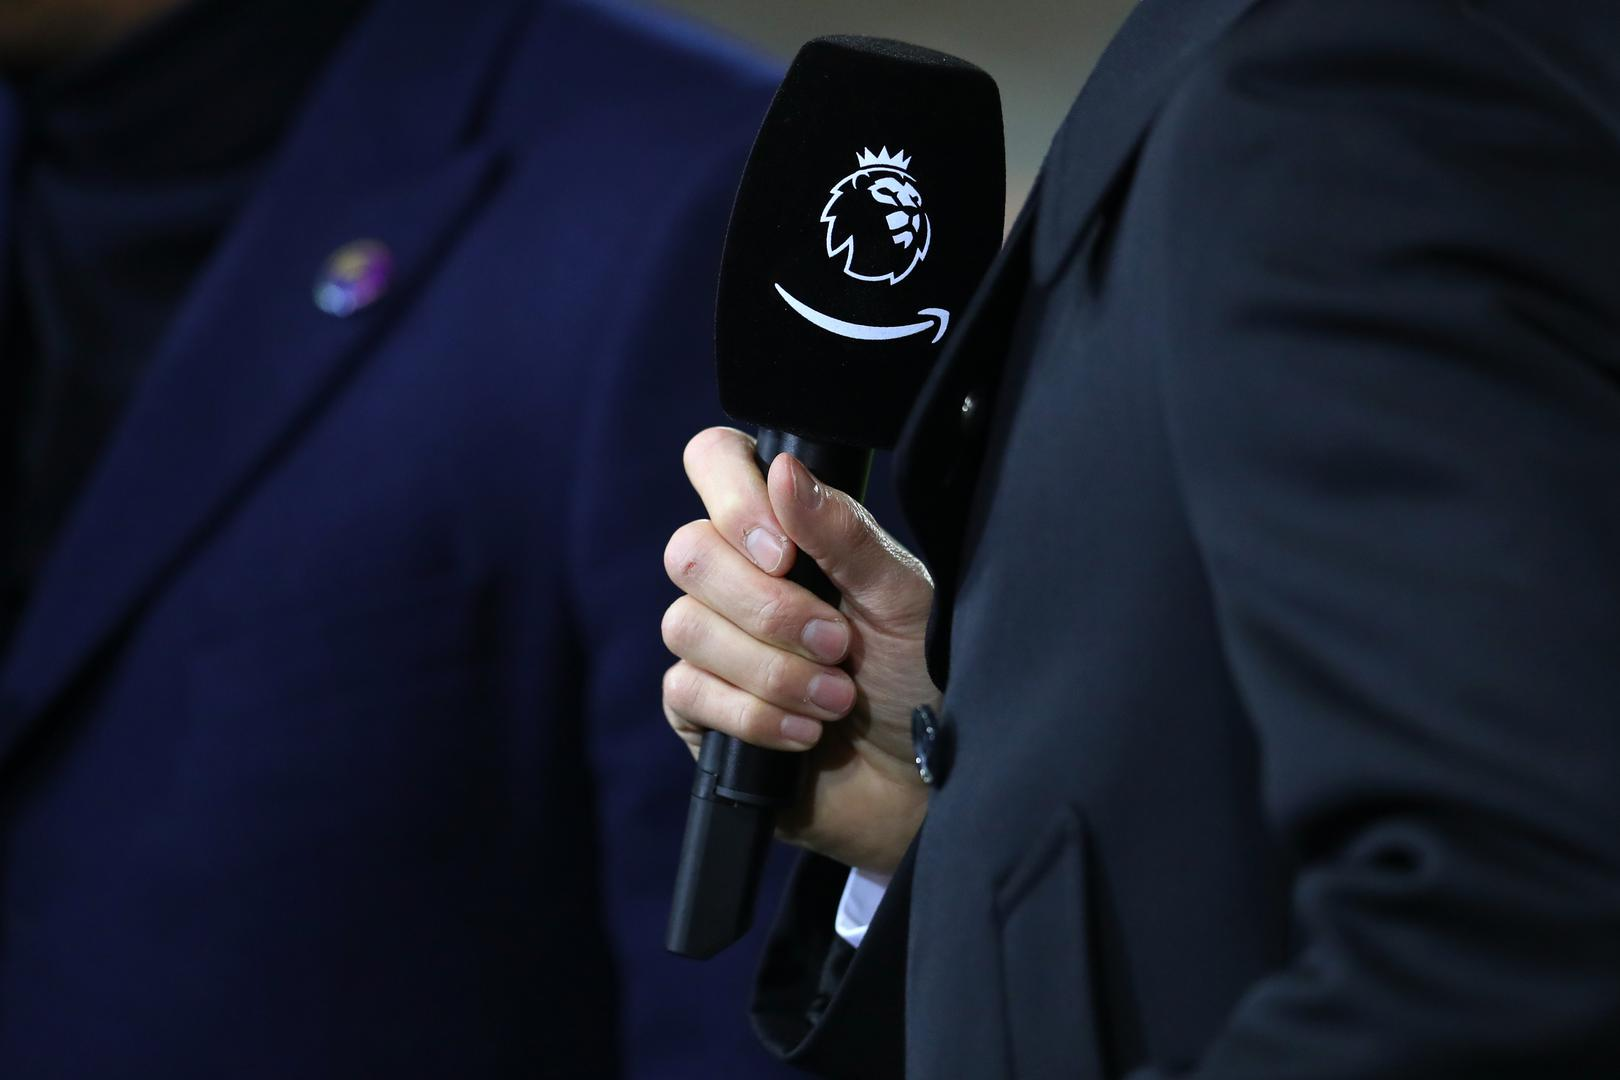 A close-up of a Premier League-branded microphone held by a TV reporter